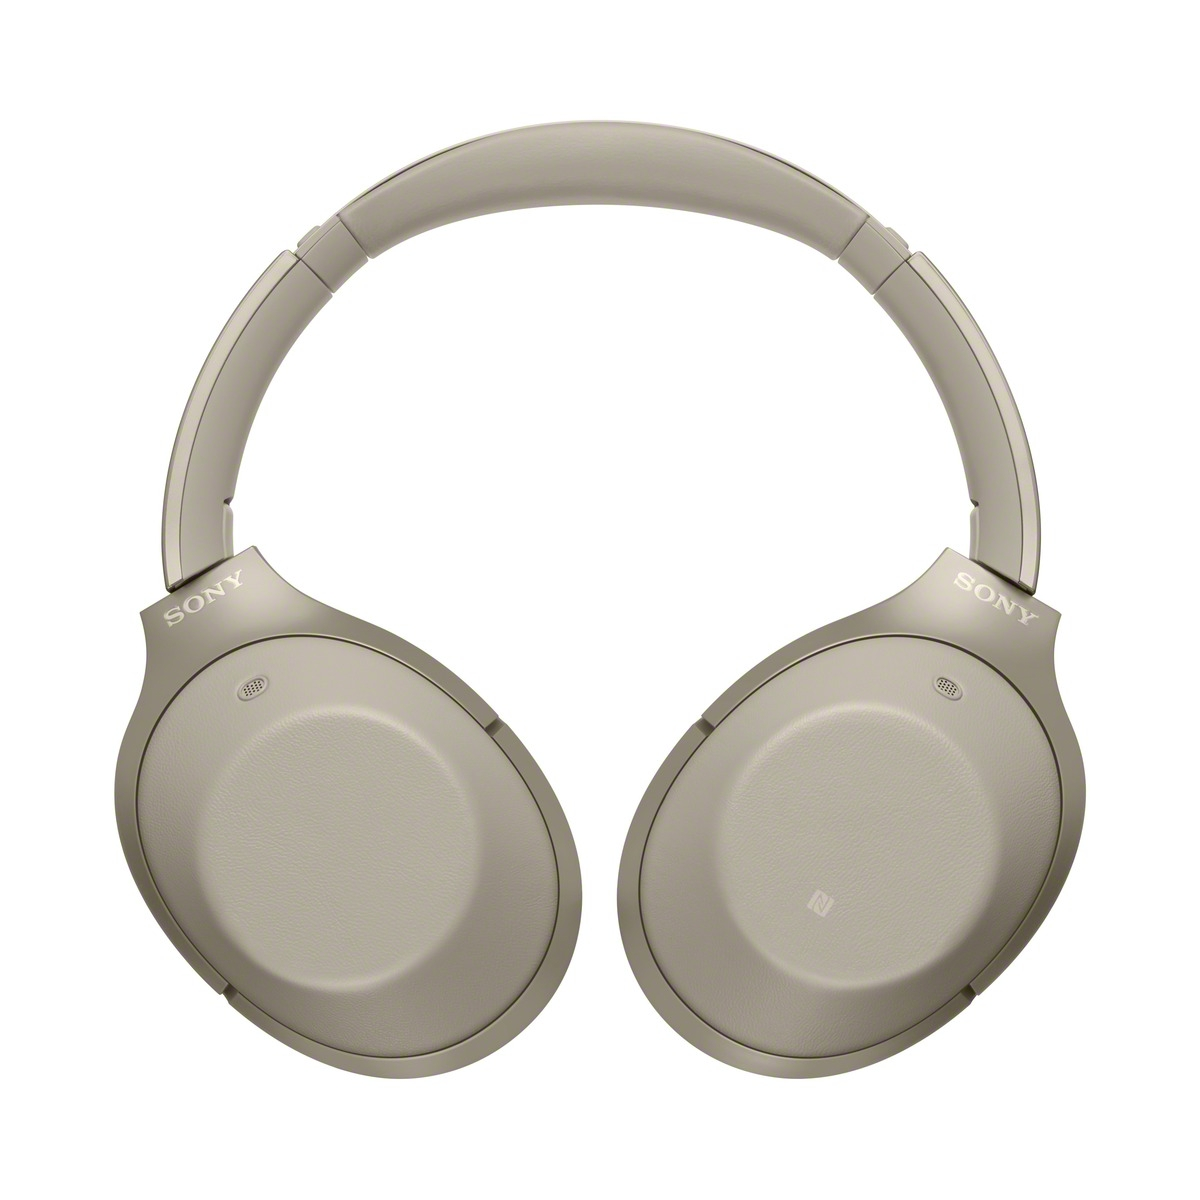 Sony-MDR-1000X-Wireless-Bluetooth-Noise-Cancelling-Hi-Fi-Headphones